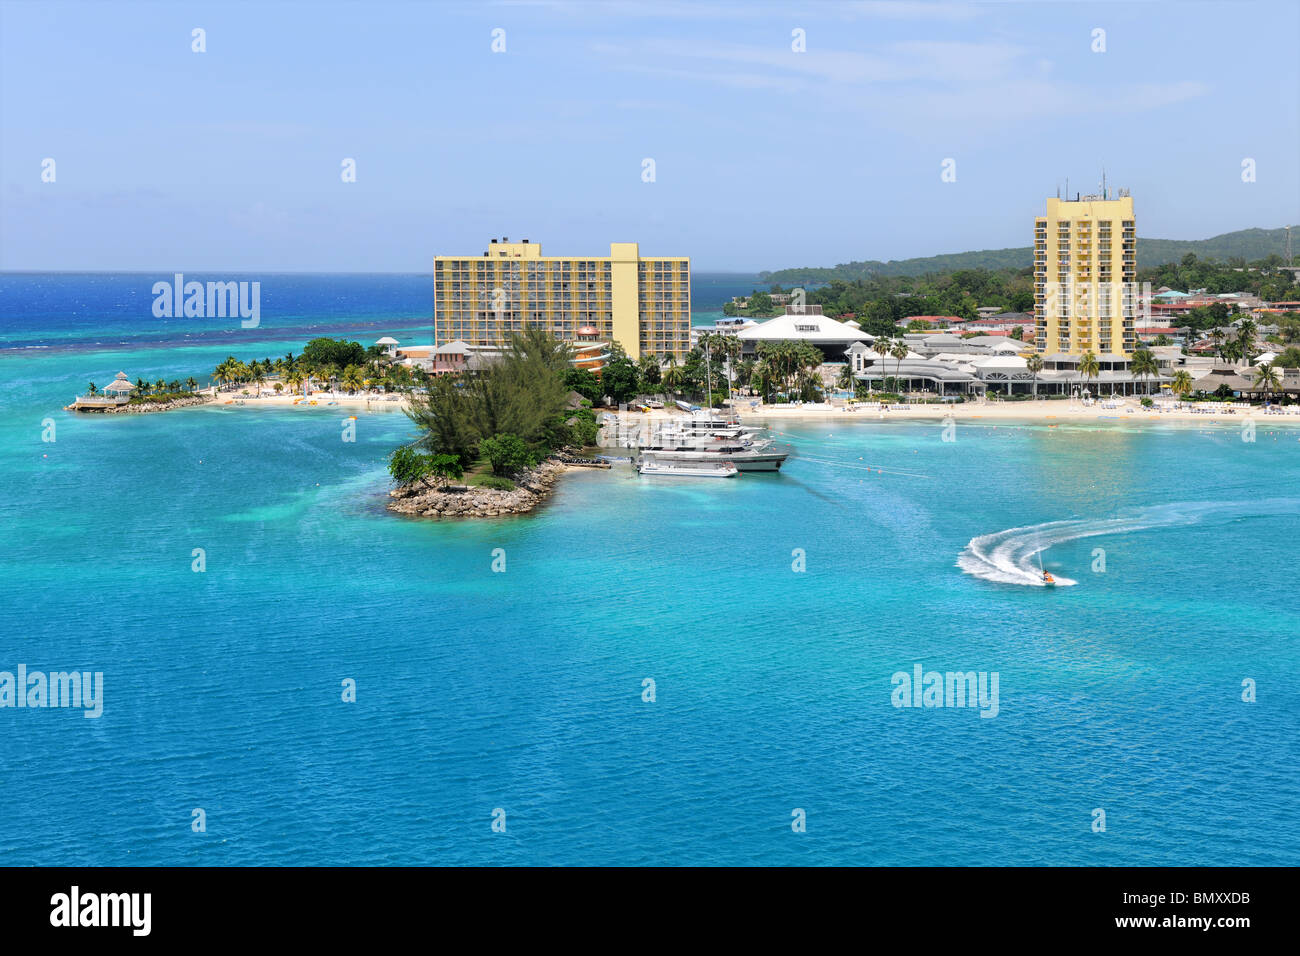 Aerial view of Ocho Rios, Jamaica in the Caribbean - Stock Image